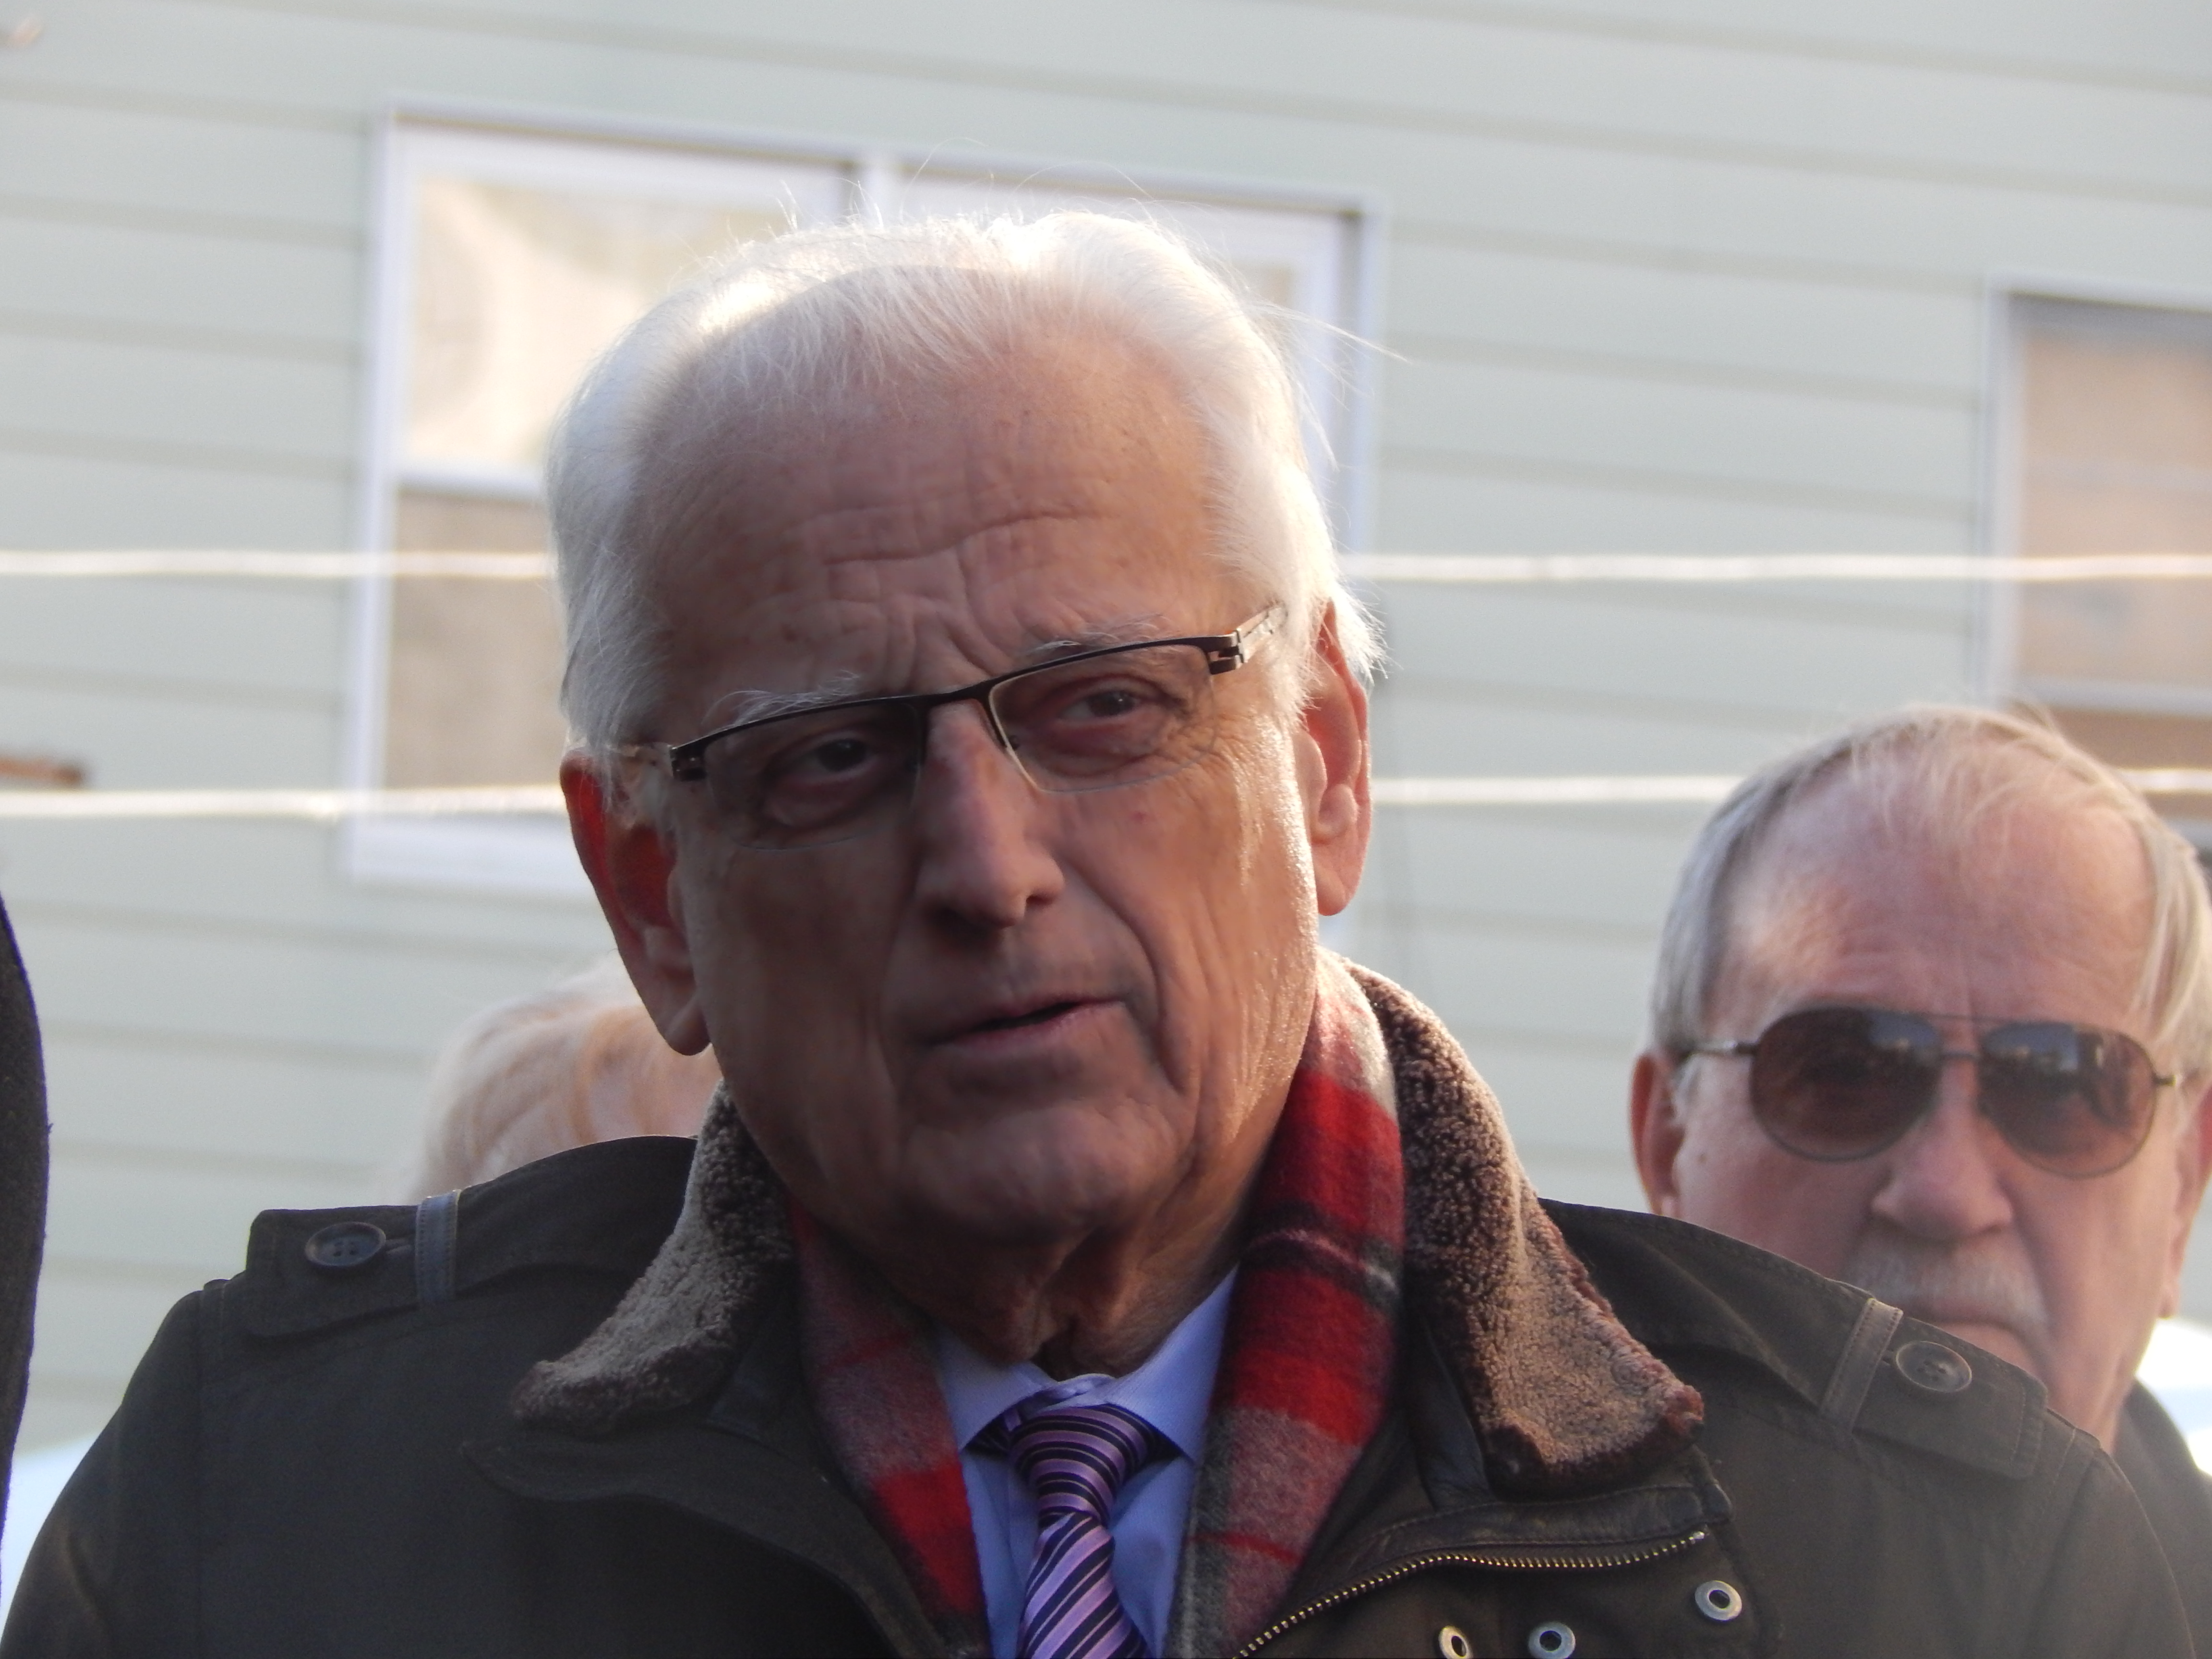 Pascrell was recently challenged for his congressional seat by Jeff Jones.